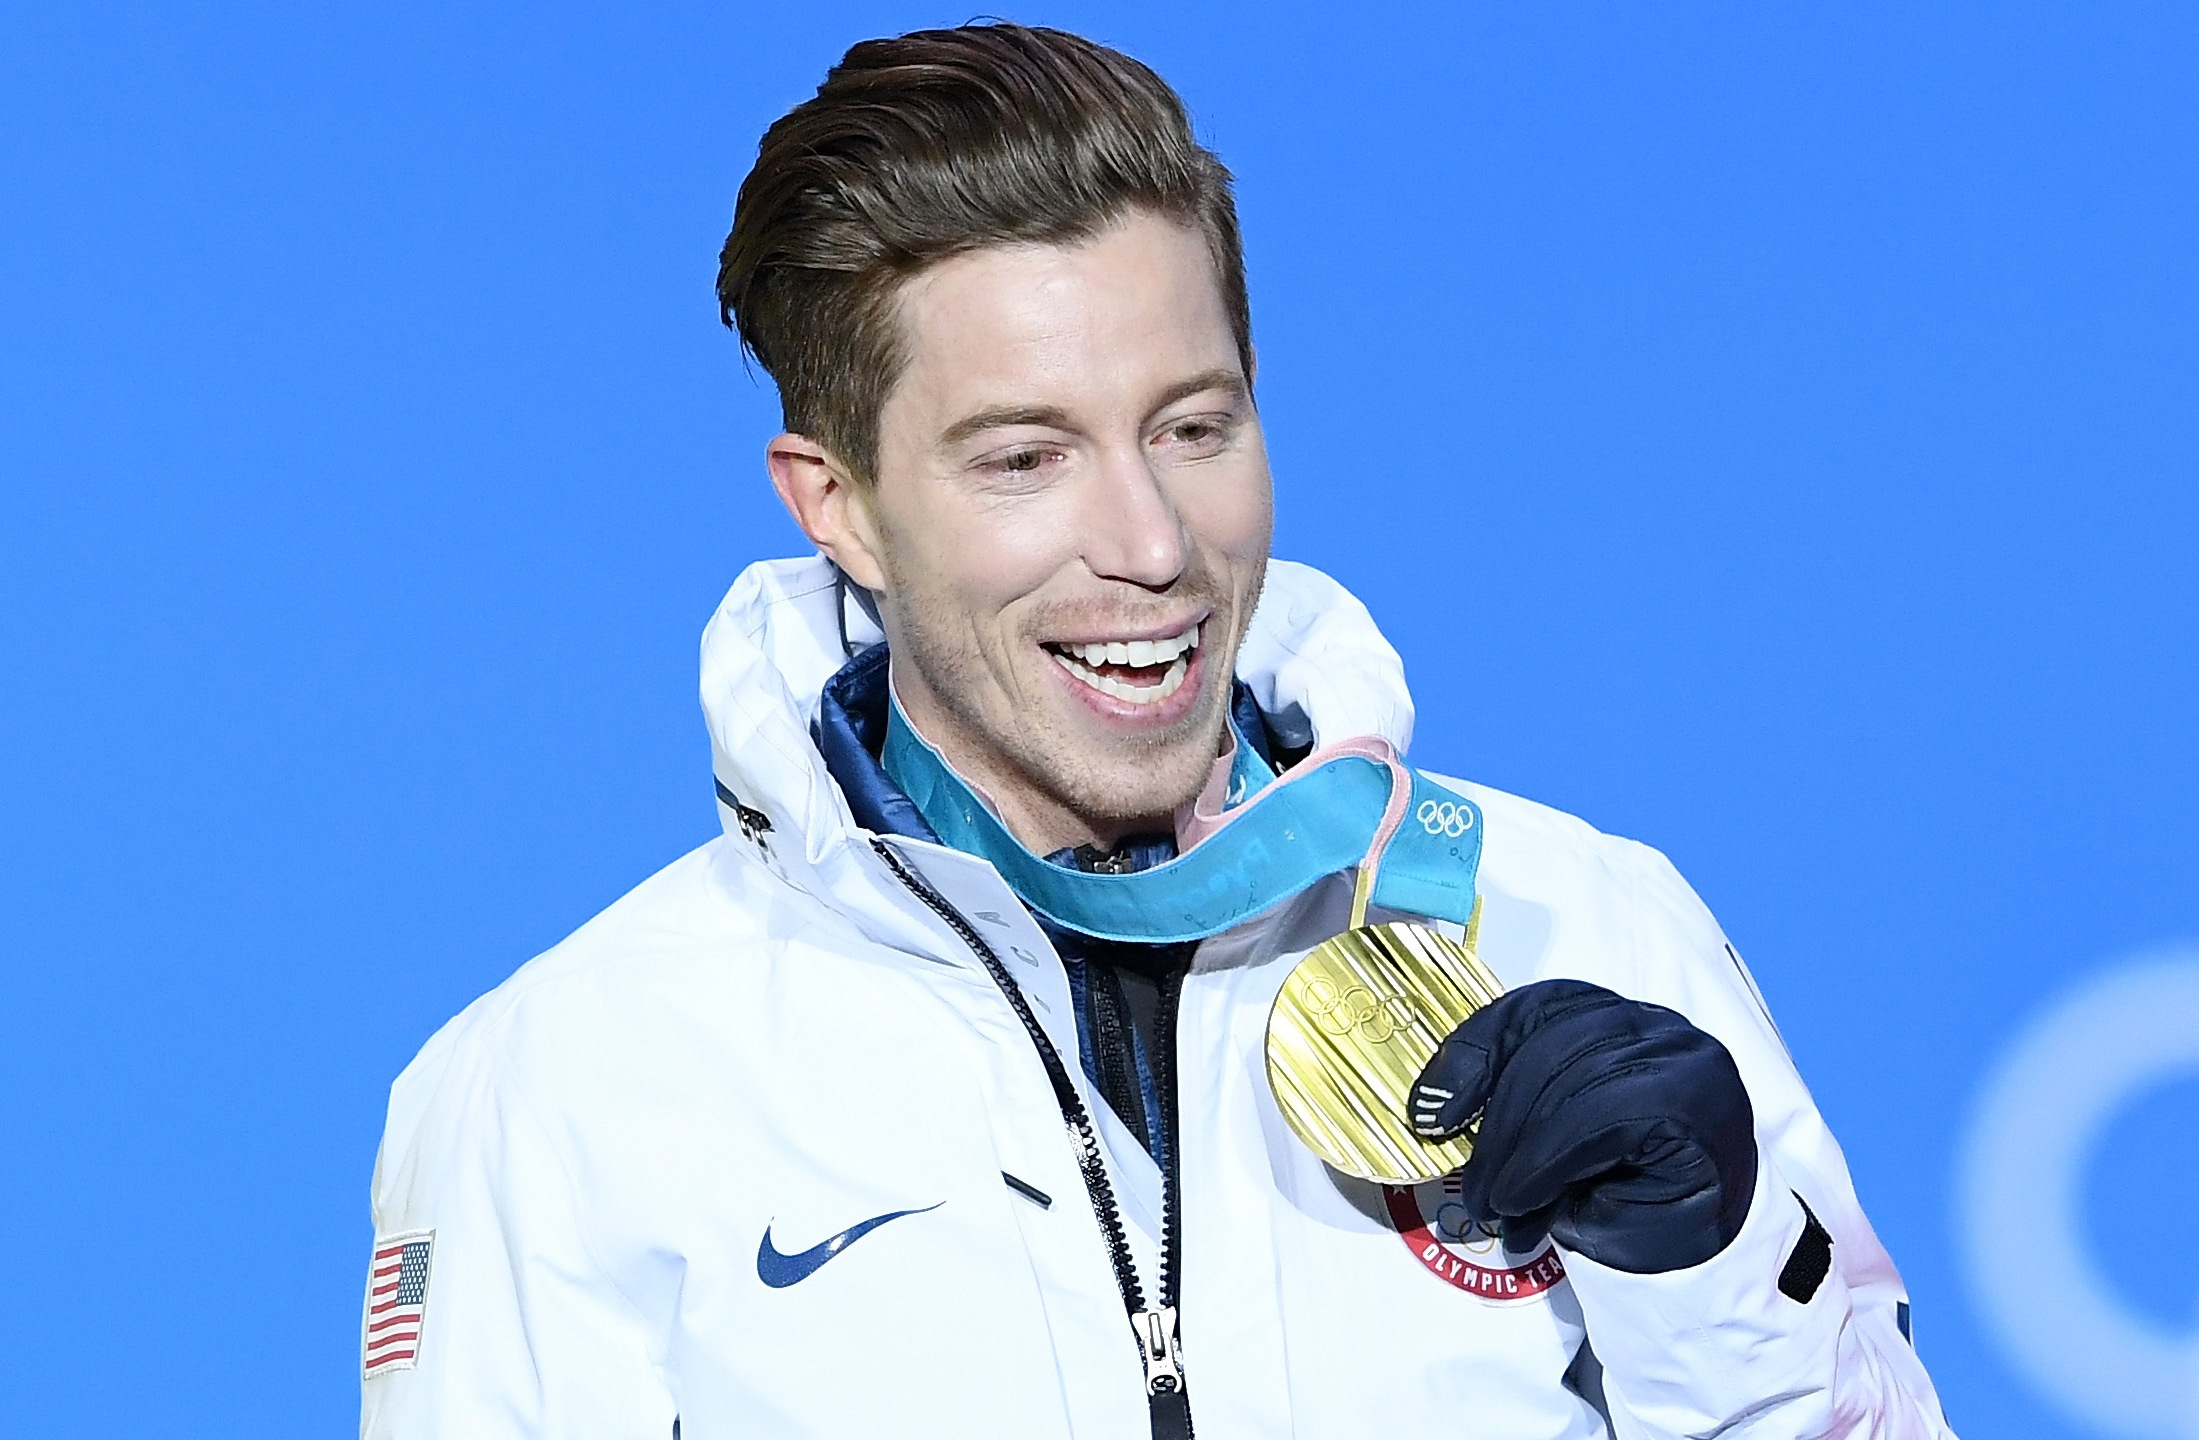 Gold medalist Shaun White of the United States poses during the medal ceremony for the Snowboard Men's Halfpipe Final on February 14, 2018 in Pyeongchang-gun, South Korea. (Credit: Quinn Rooney/Getty Images)